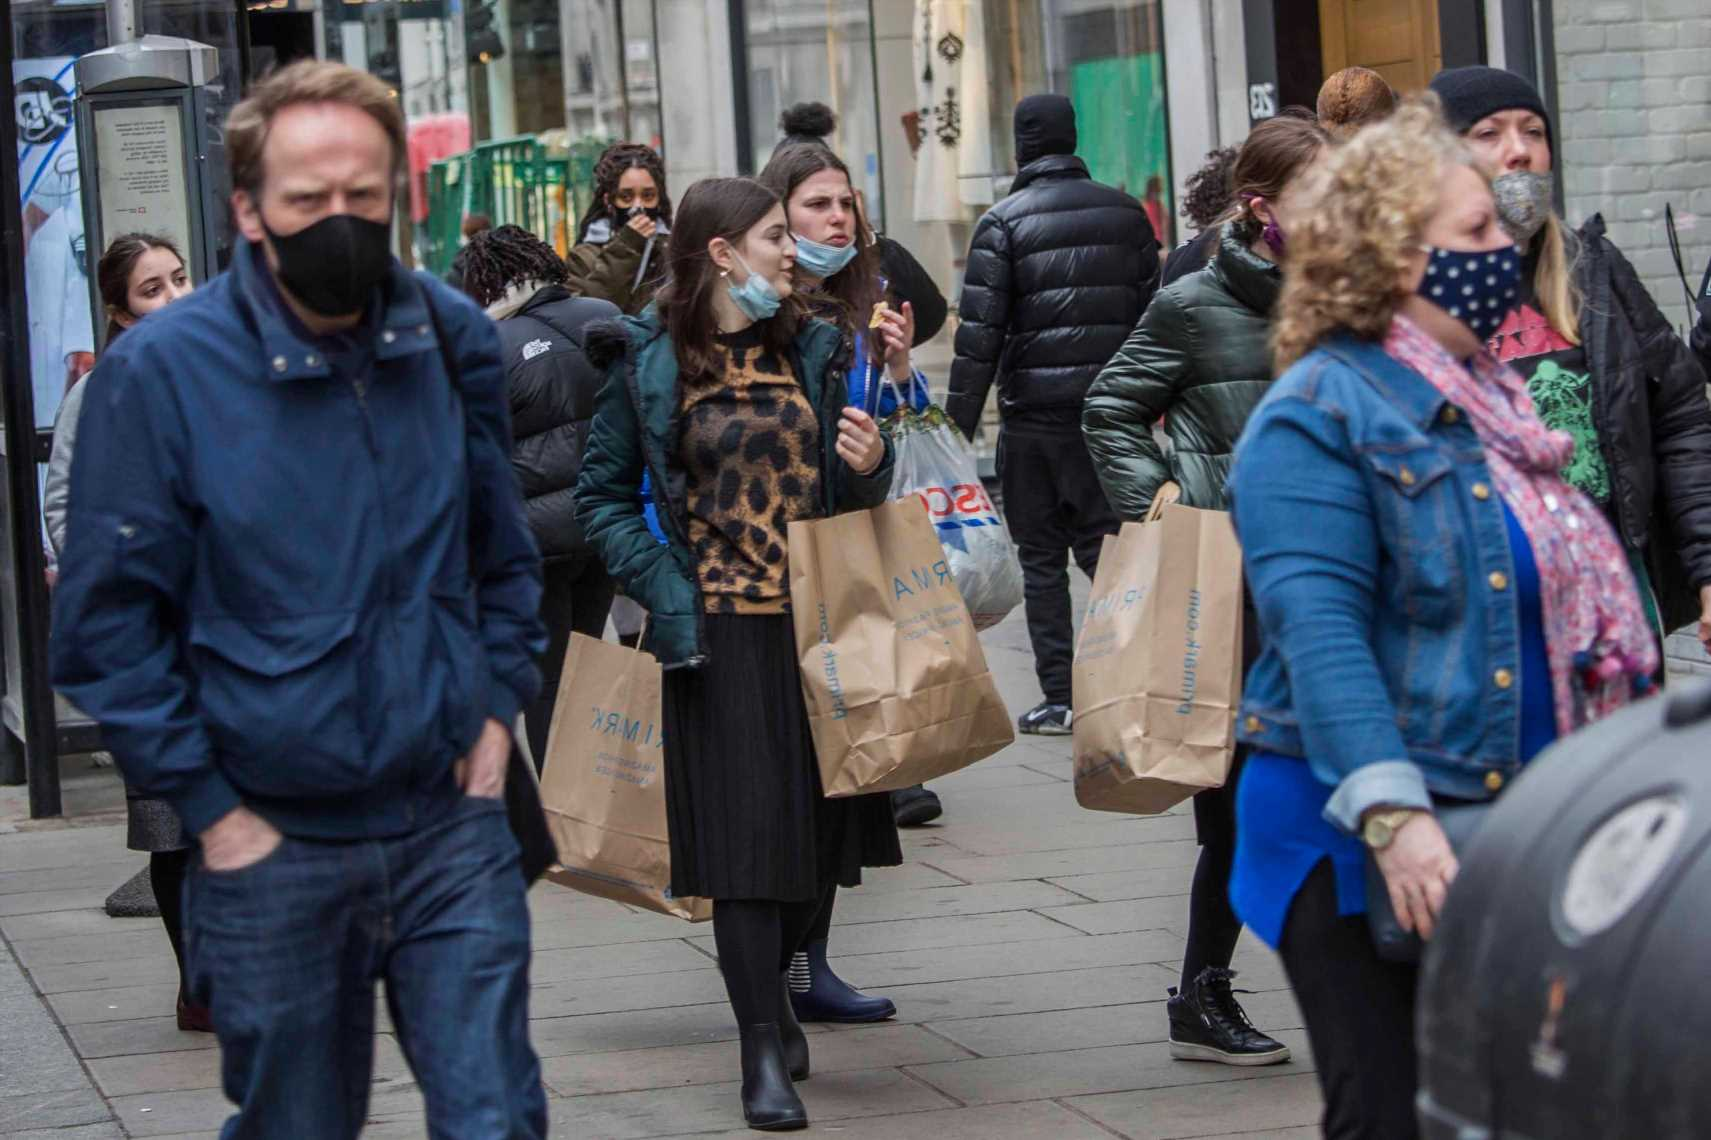 How to keep yourself Covid safe as shops, pubs, gyms reopen and lockdown eases